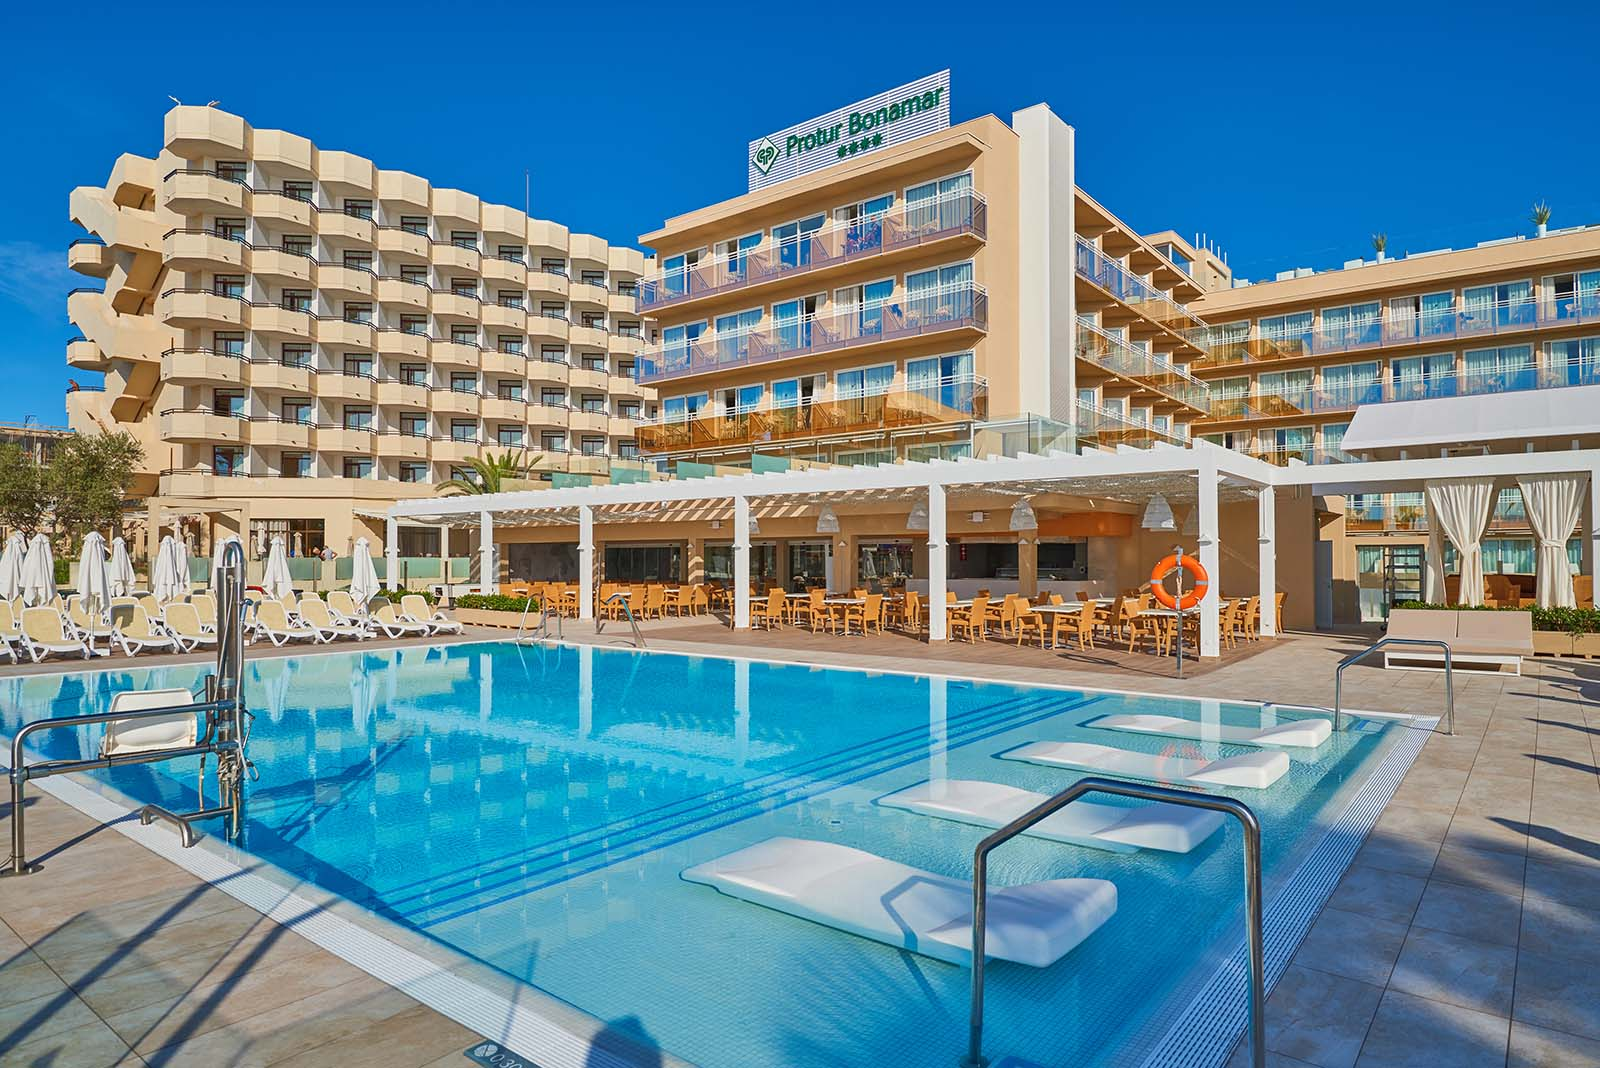 Hotels Und Aparthotels In Cala Millor Mallorca Protur Hotels